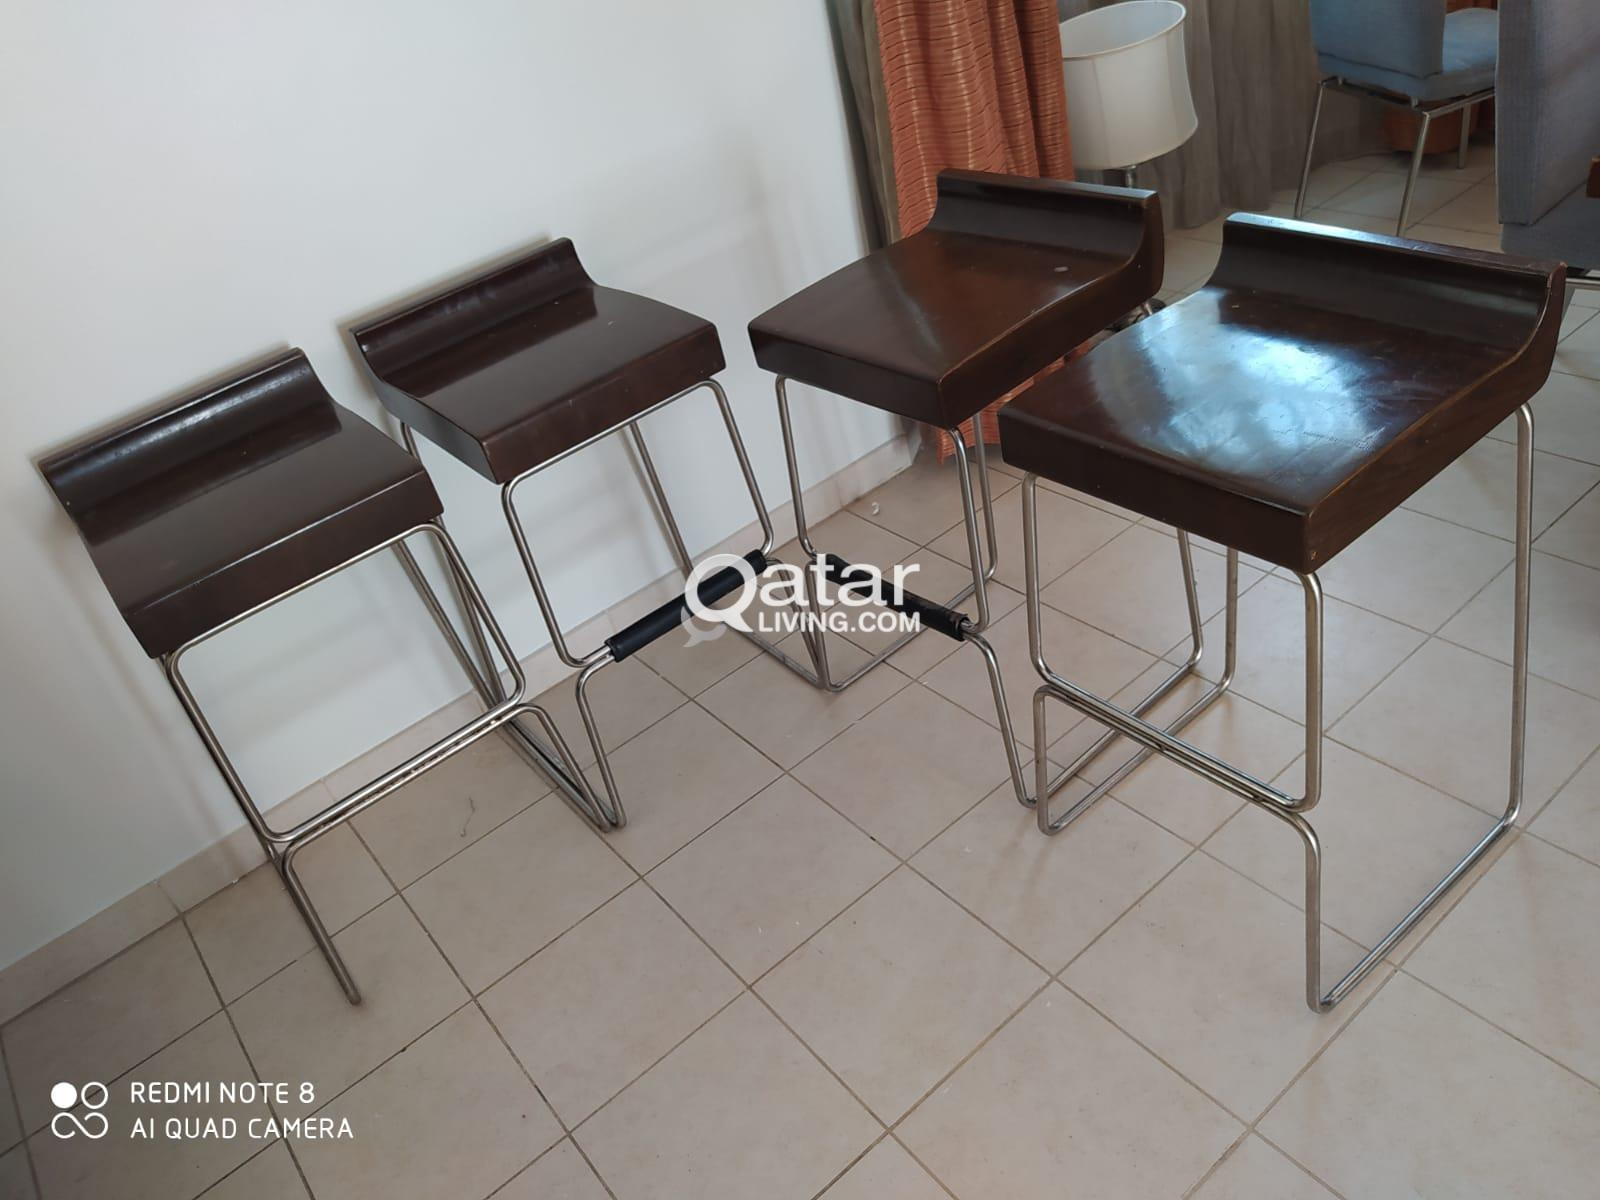 used items for salle 55515633